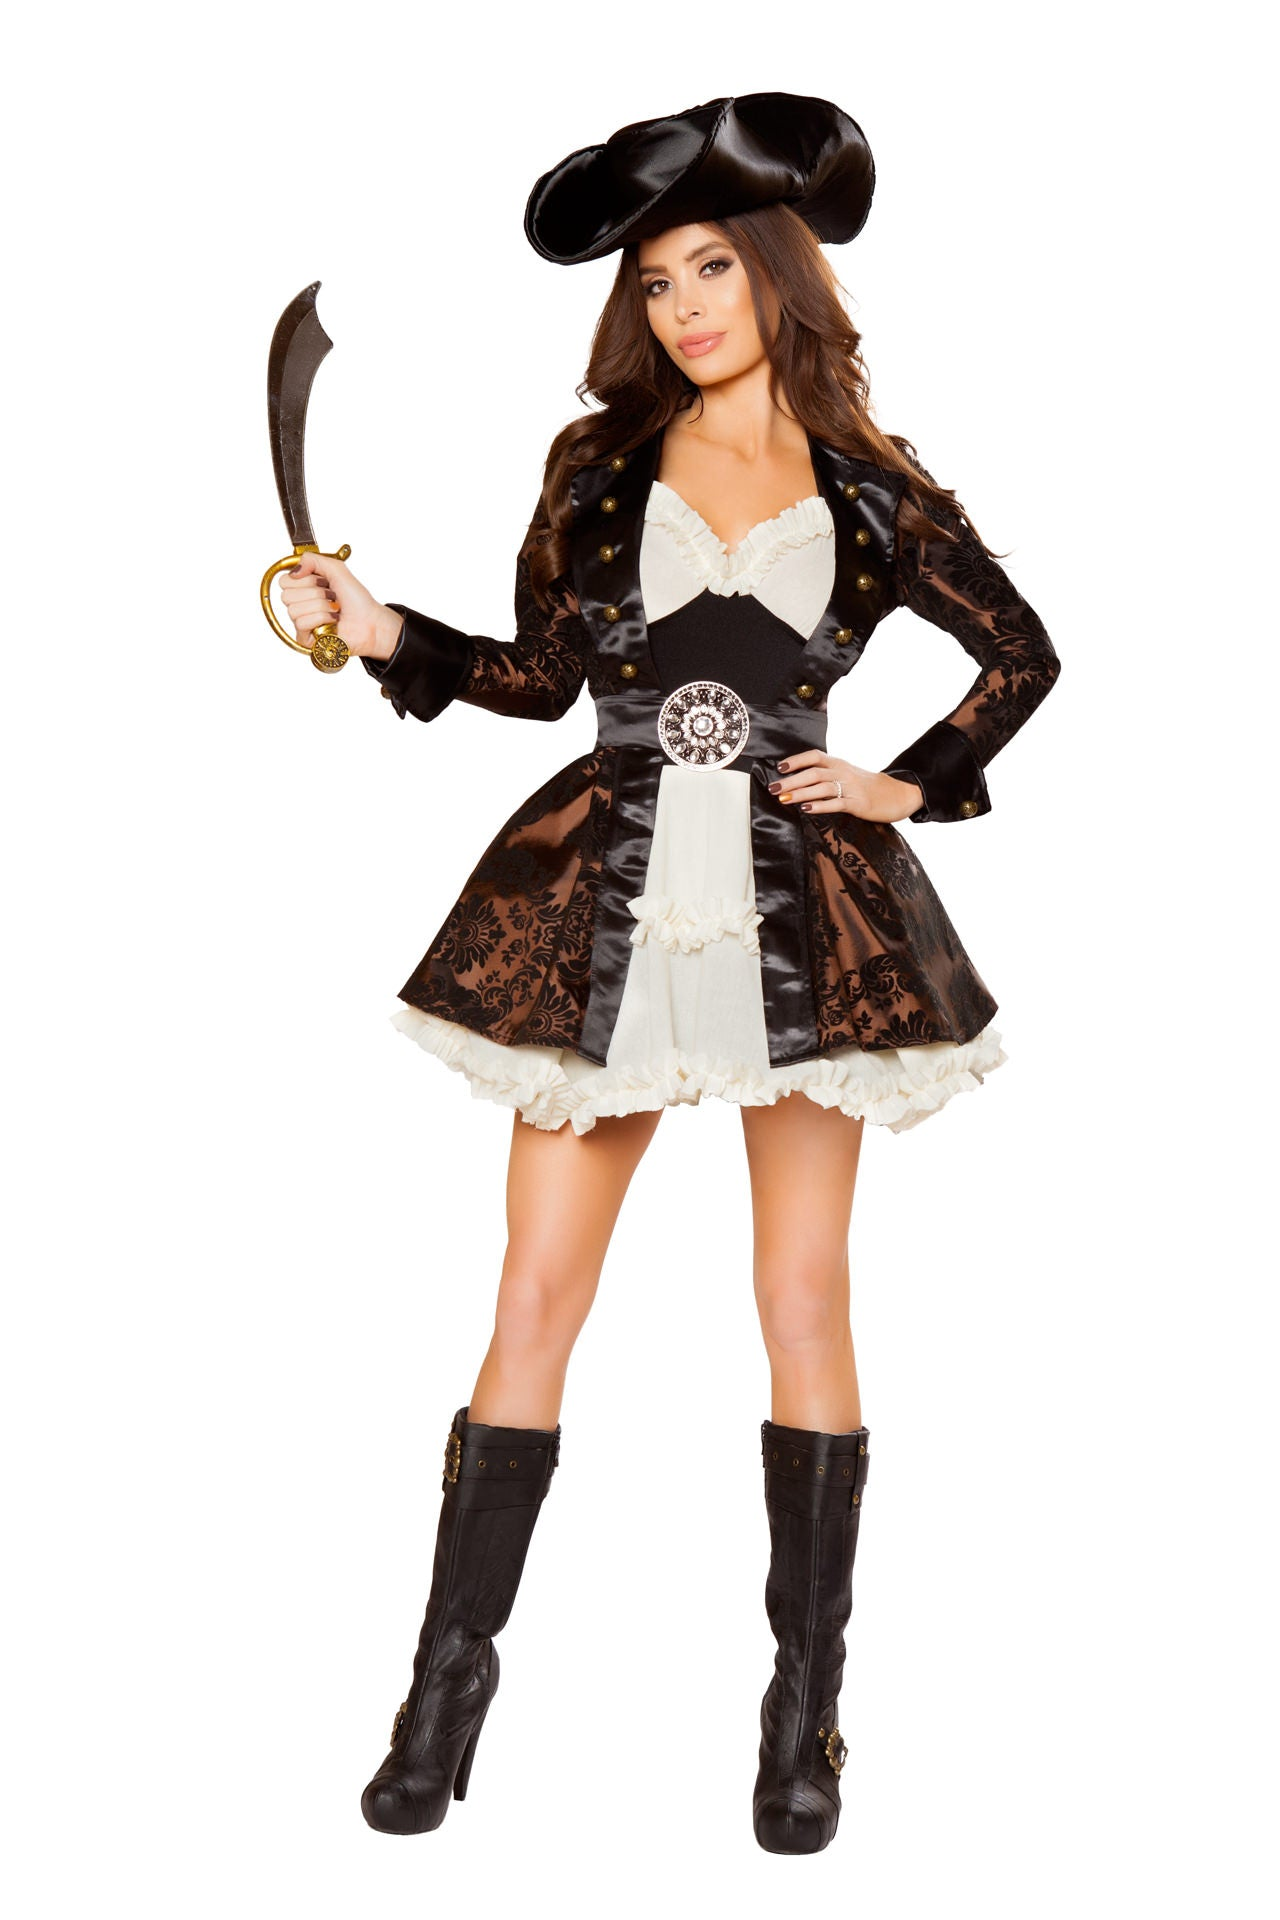 10071 - 5pc Pirate Beauty ${description} | Roma Costume and Roma Confidential wholesale manufacturer of Women Apparel bulk world wide wholesale and world wide drop ship services for Adult Halloween Costumes, Sexy and Elegant Lingerie, Rave Clothing, Club wear, and Christmas Costumes. Costumes,Blowout Sale, Roma Costume, Inc., Roma Costume, Roma Confidential, Wholesale clothing, drop ship, drop ship service, Wholesale Lingerie, Wholesale Adult Halloween Costumes, Rave Clothing, EDM Clothing, Festival Wear, Christmas Costumes, Clubwear, Club wear.